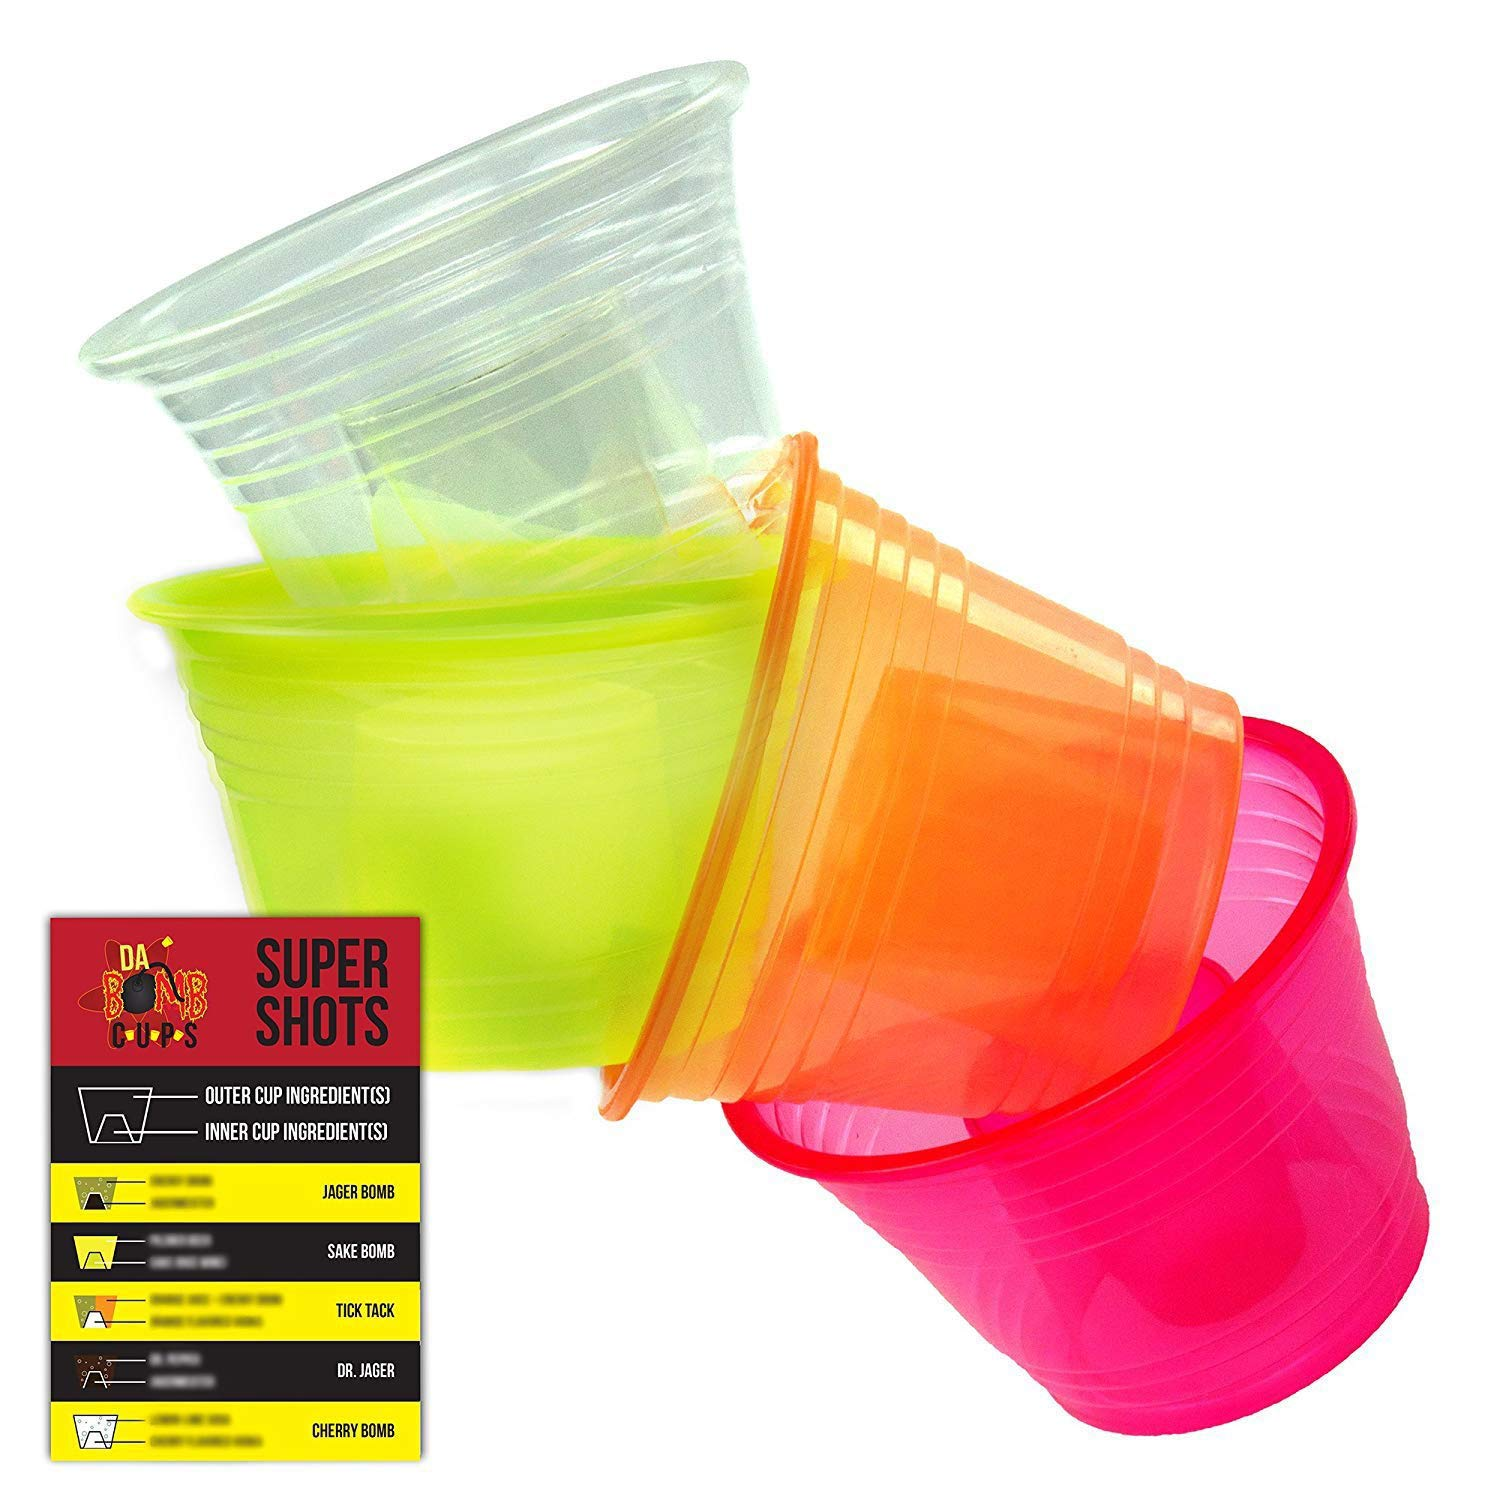 Da Bomb Cups 150 Pack Disposable Jager Bomb Cups. Measure Two Part Bomber Shot Glasses for Great Taste Every Time! Throw a Great Party with Recipe Card & 4 Colors to Impress Guests! by Da Bomb Cups